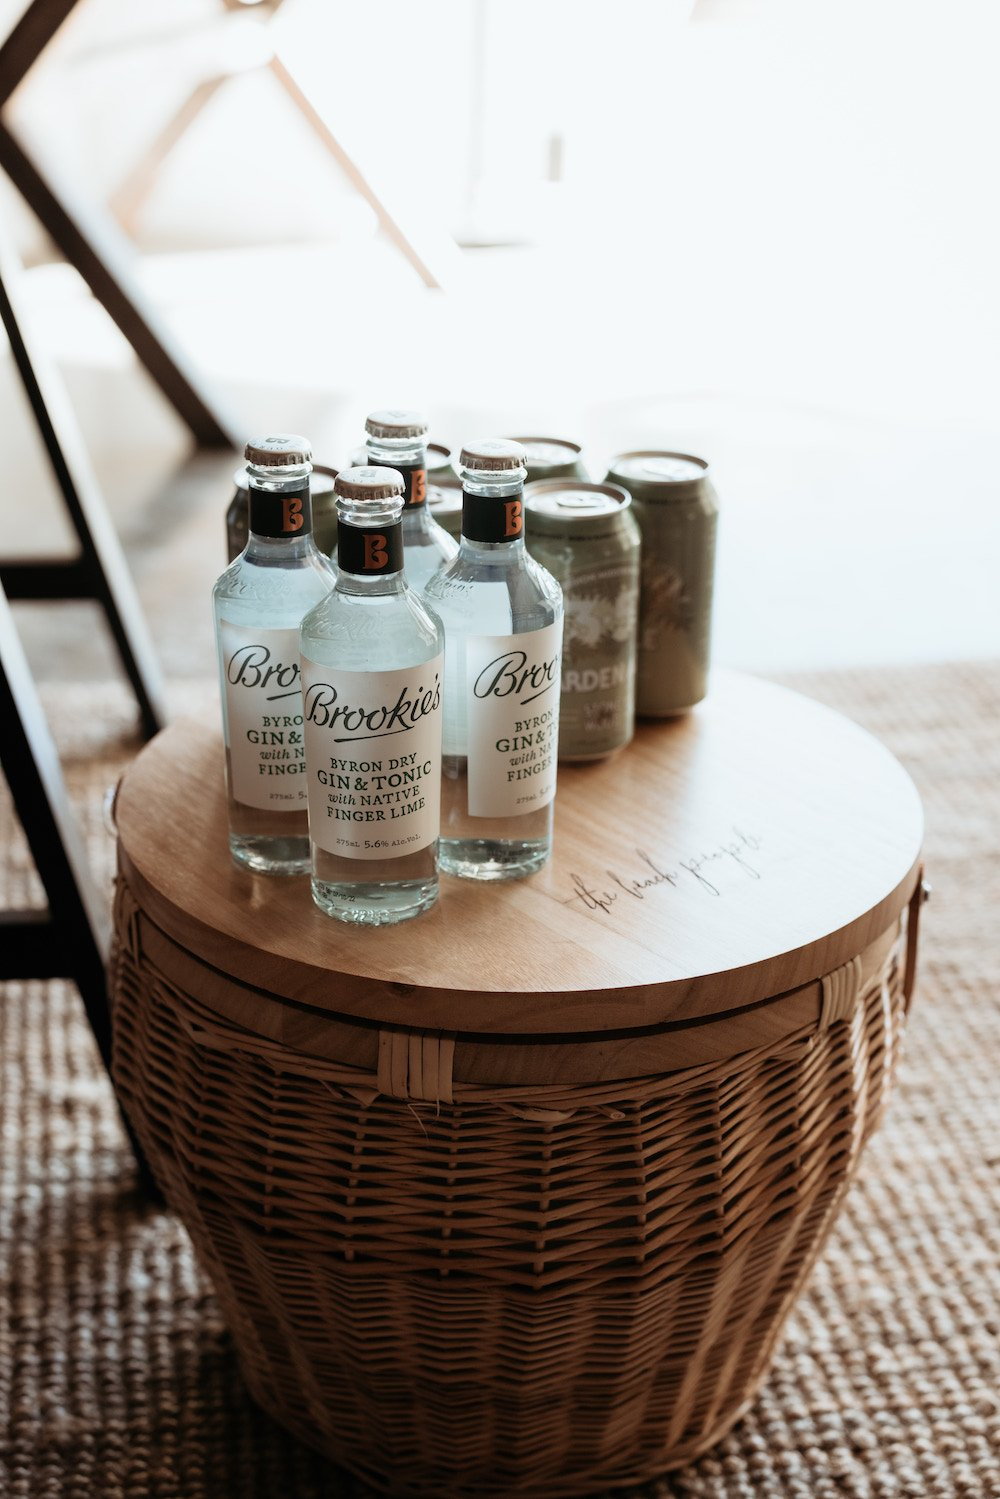 The Beach People picnic basket with brookies gin bottles, friends of the acre